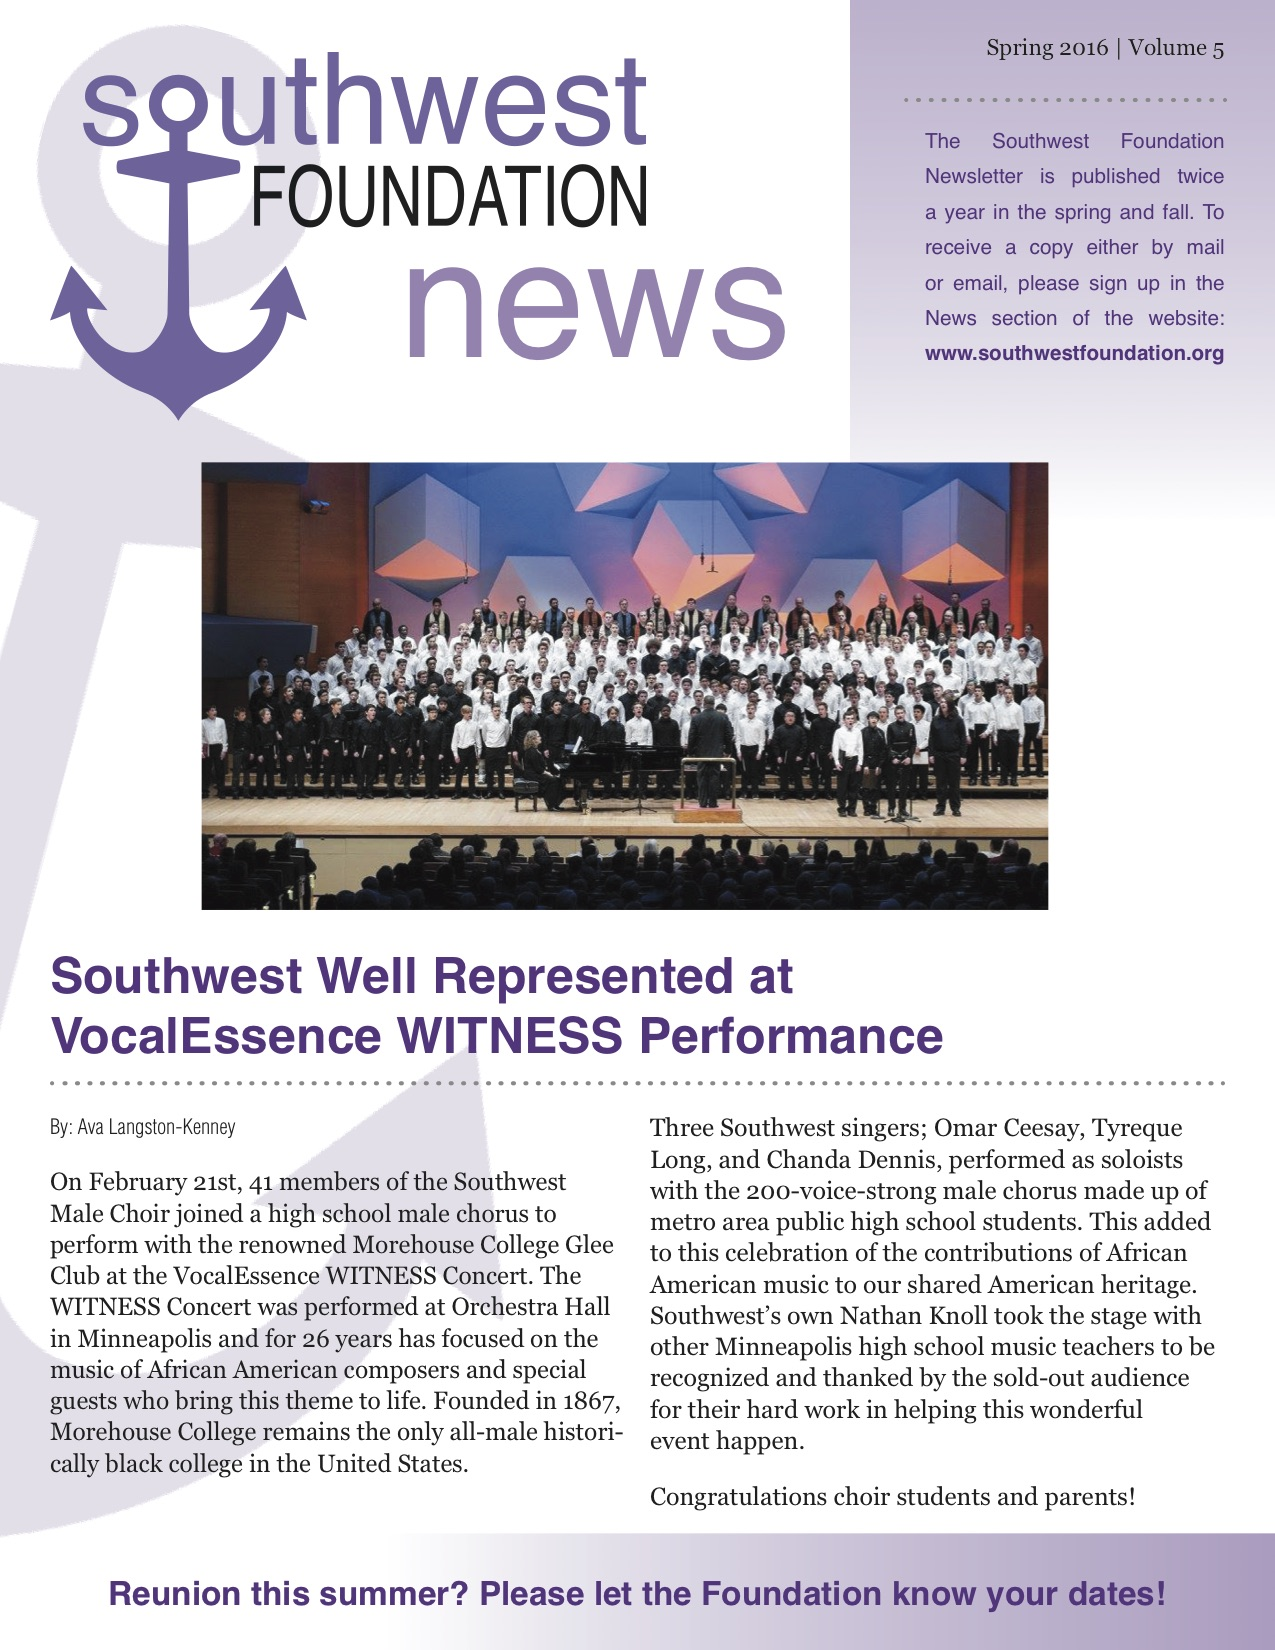 Spring 2016 Newsletter Page 1.jpeg